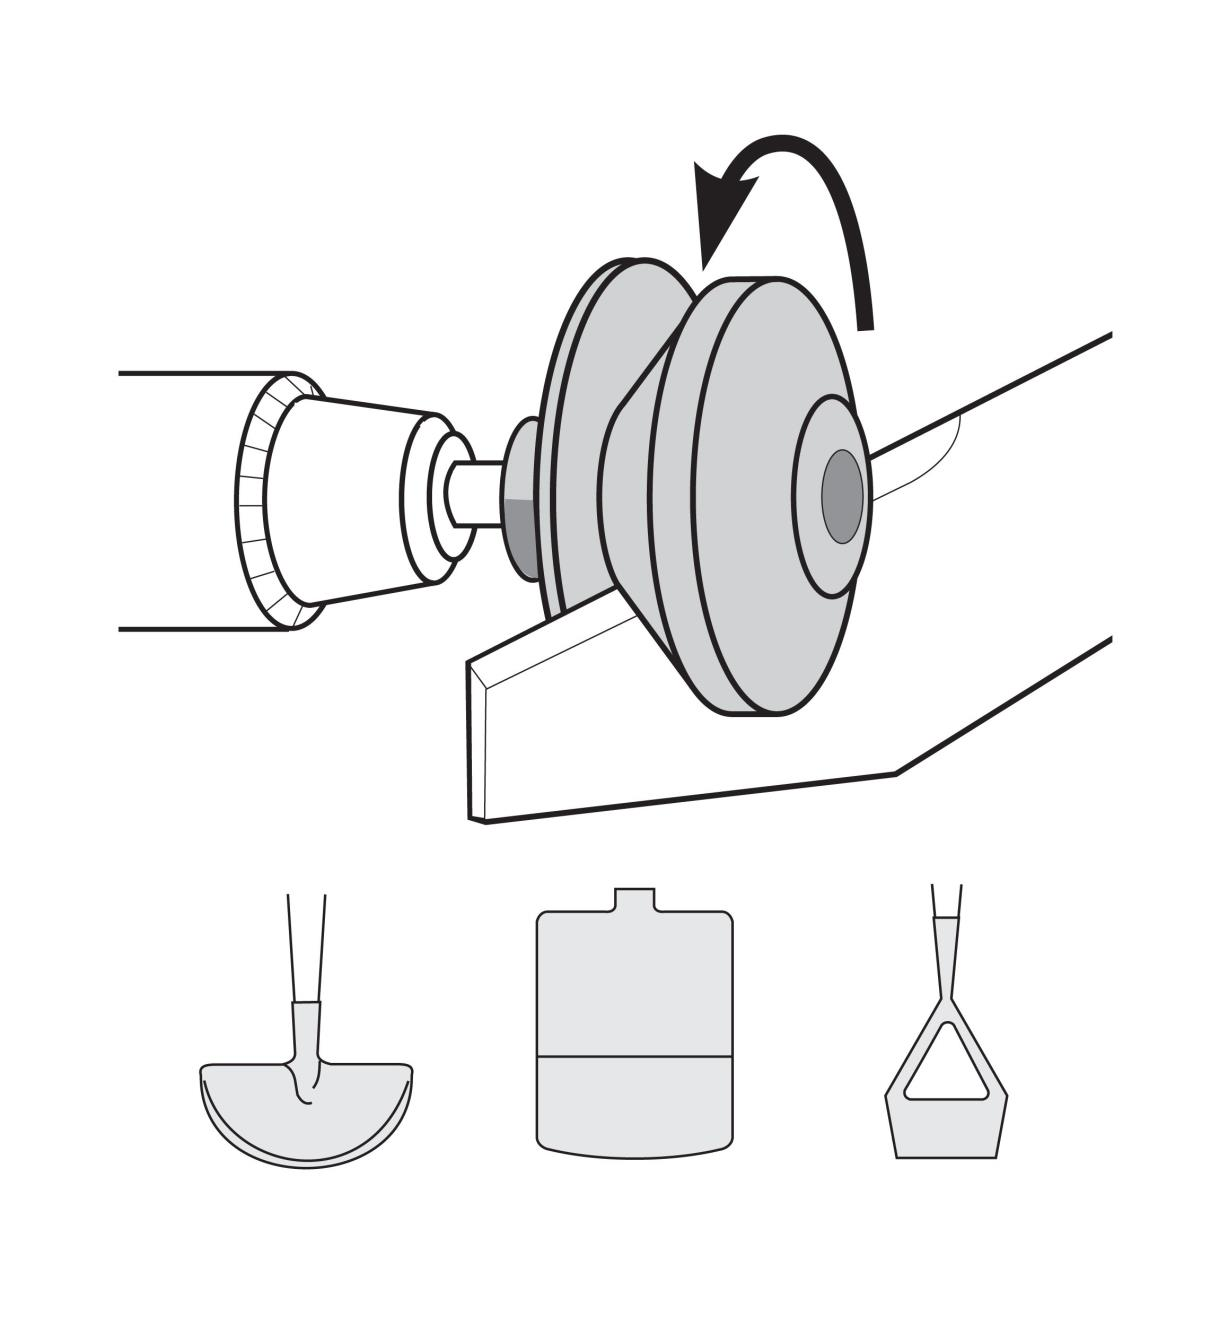 Illustration shows the Rotary Mower Sharpener in a hand drill sharpening a mower blade